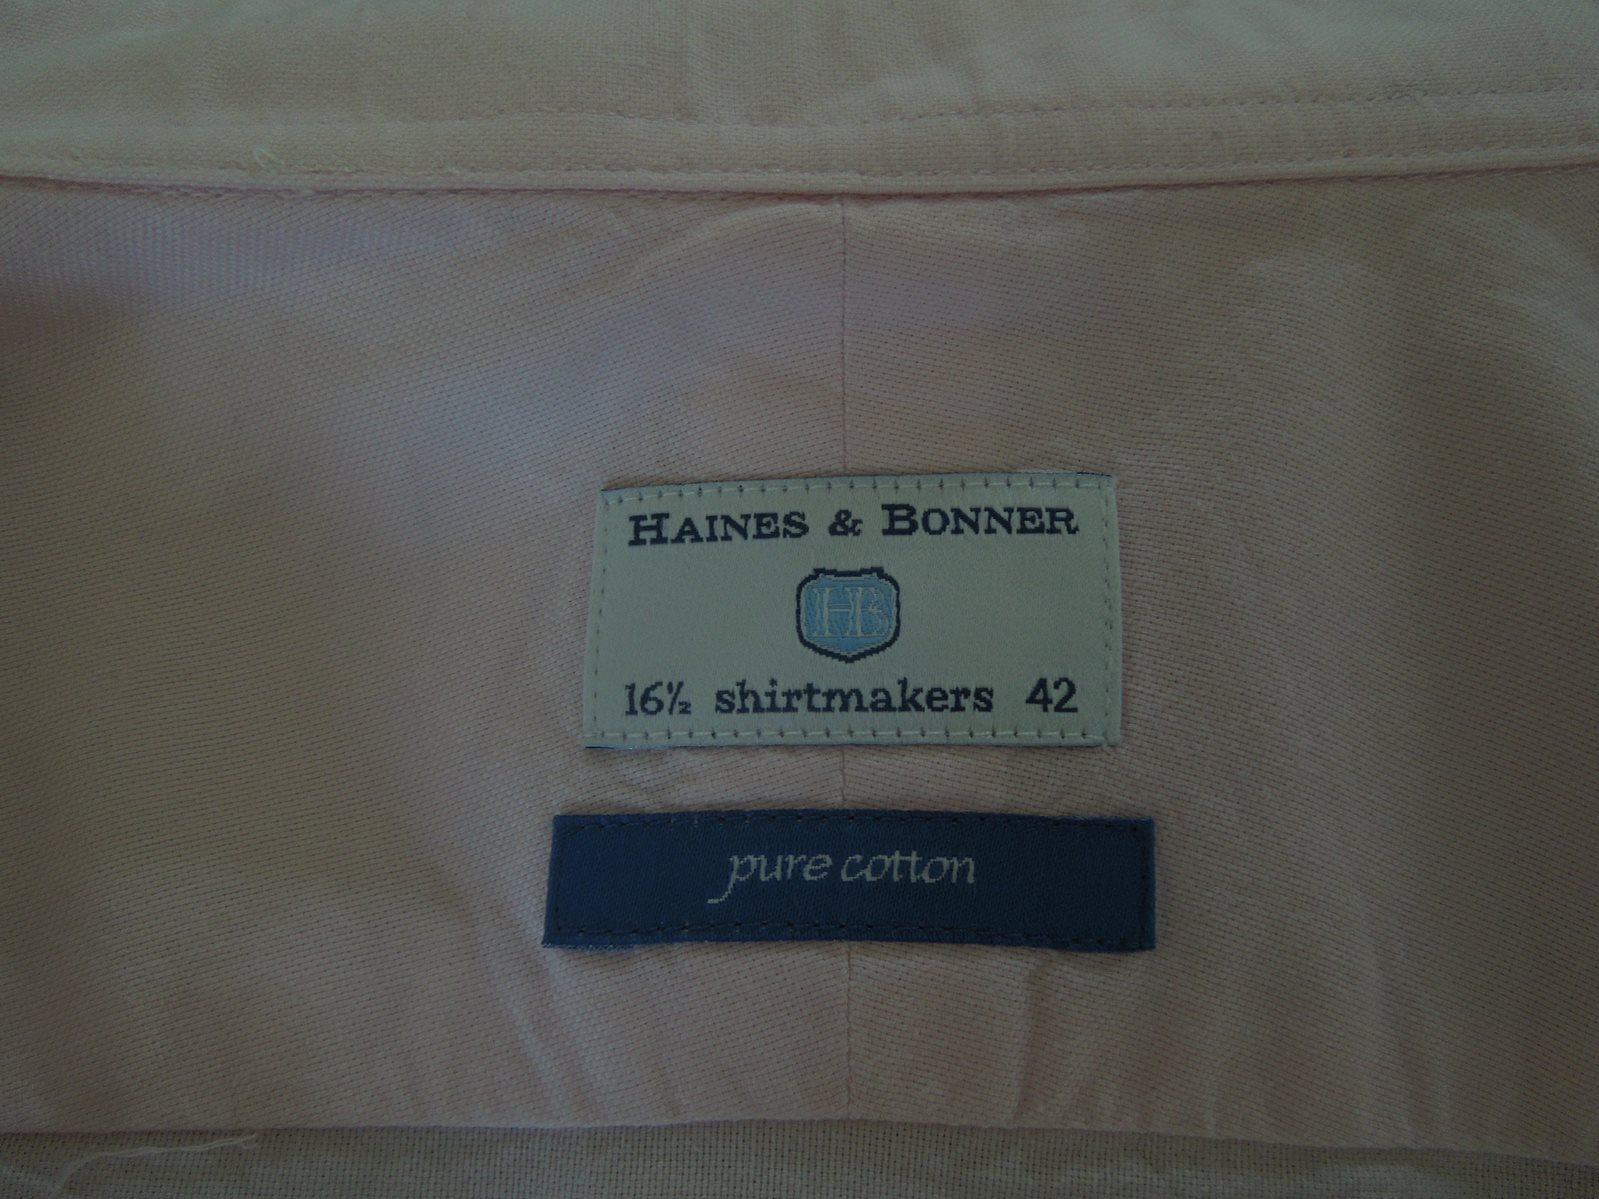 Haines & Bonner { Shirtmakers } - The Loft, London